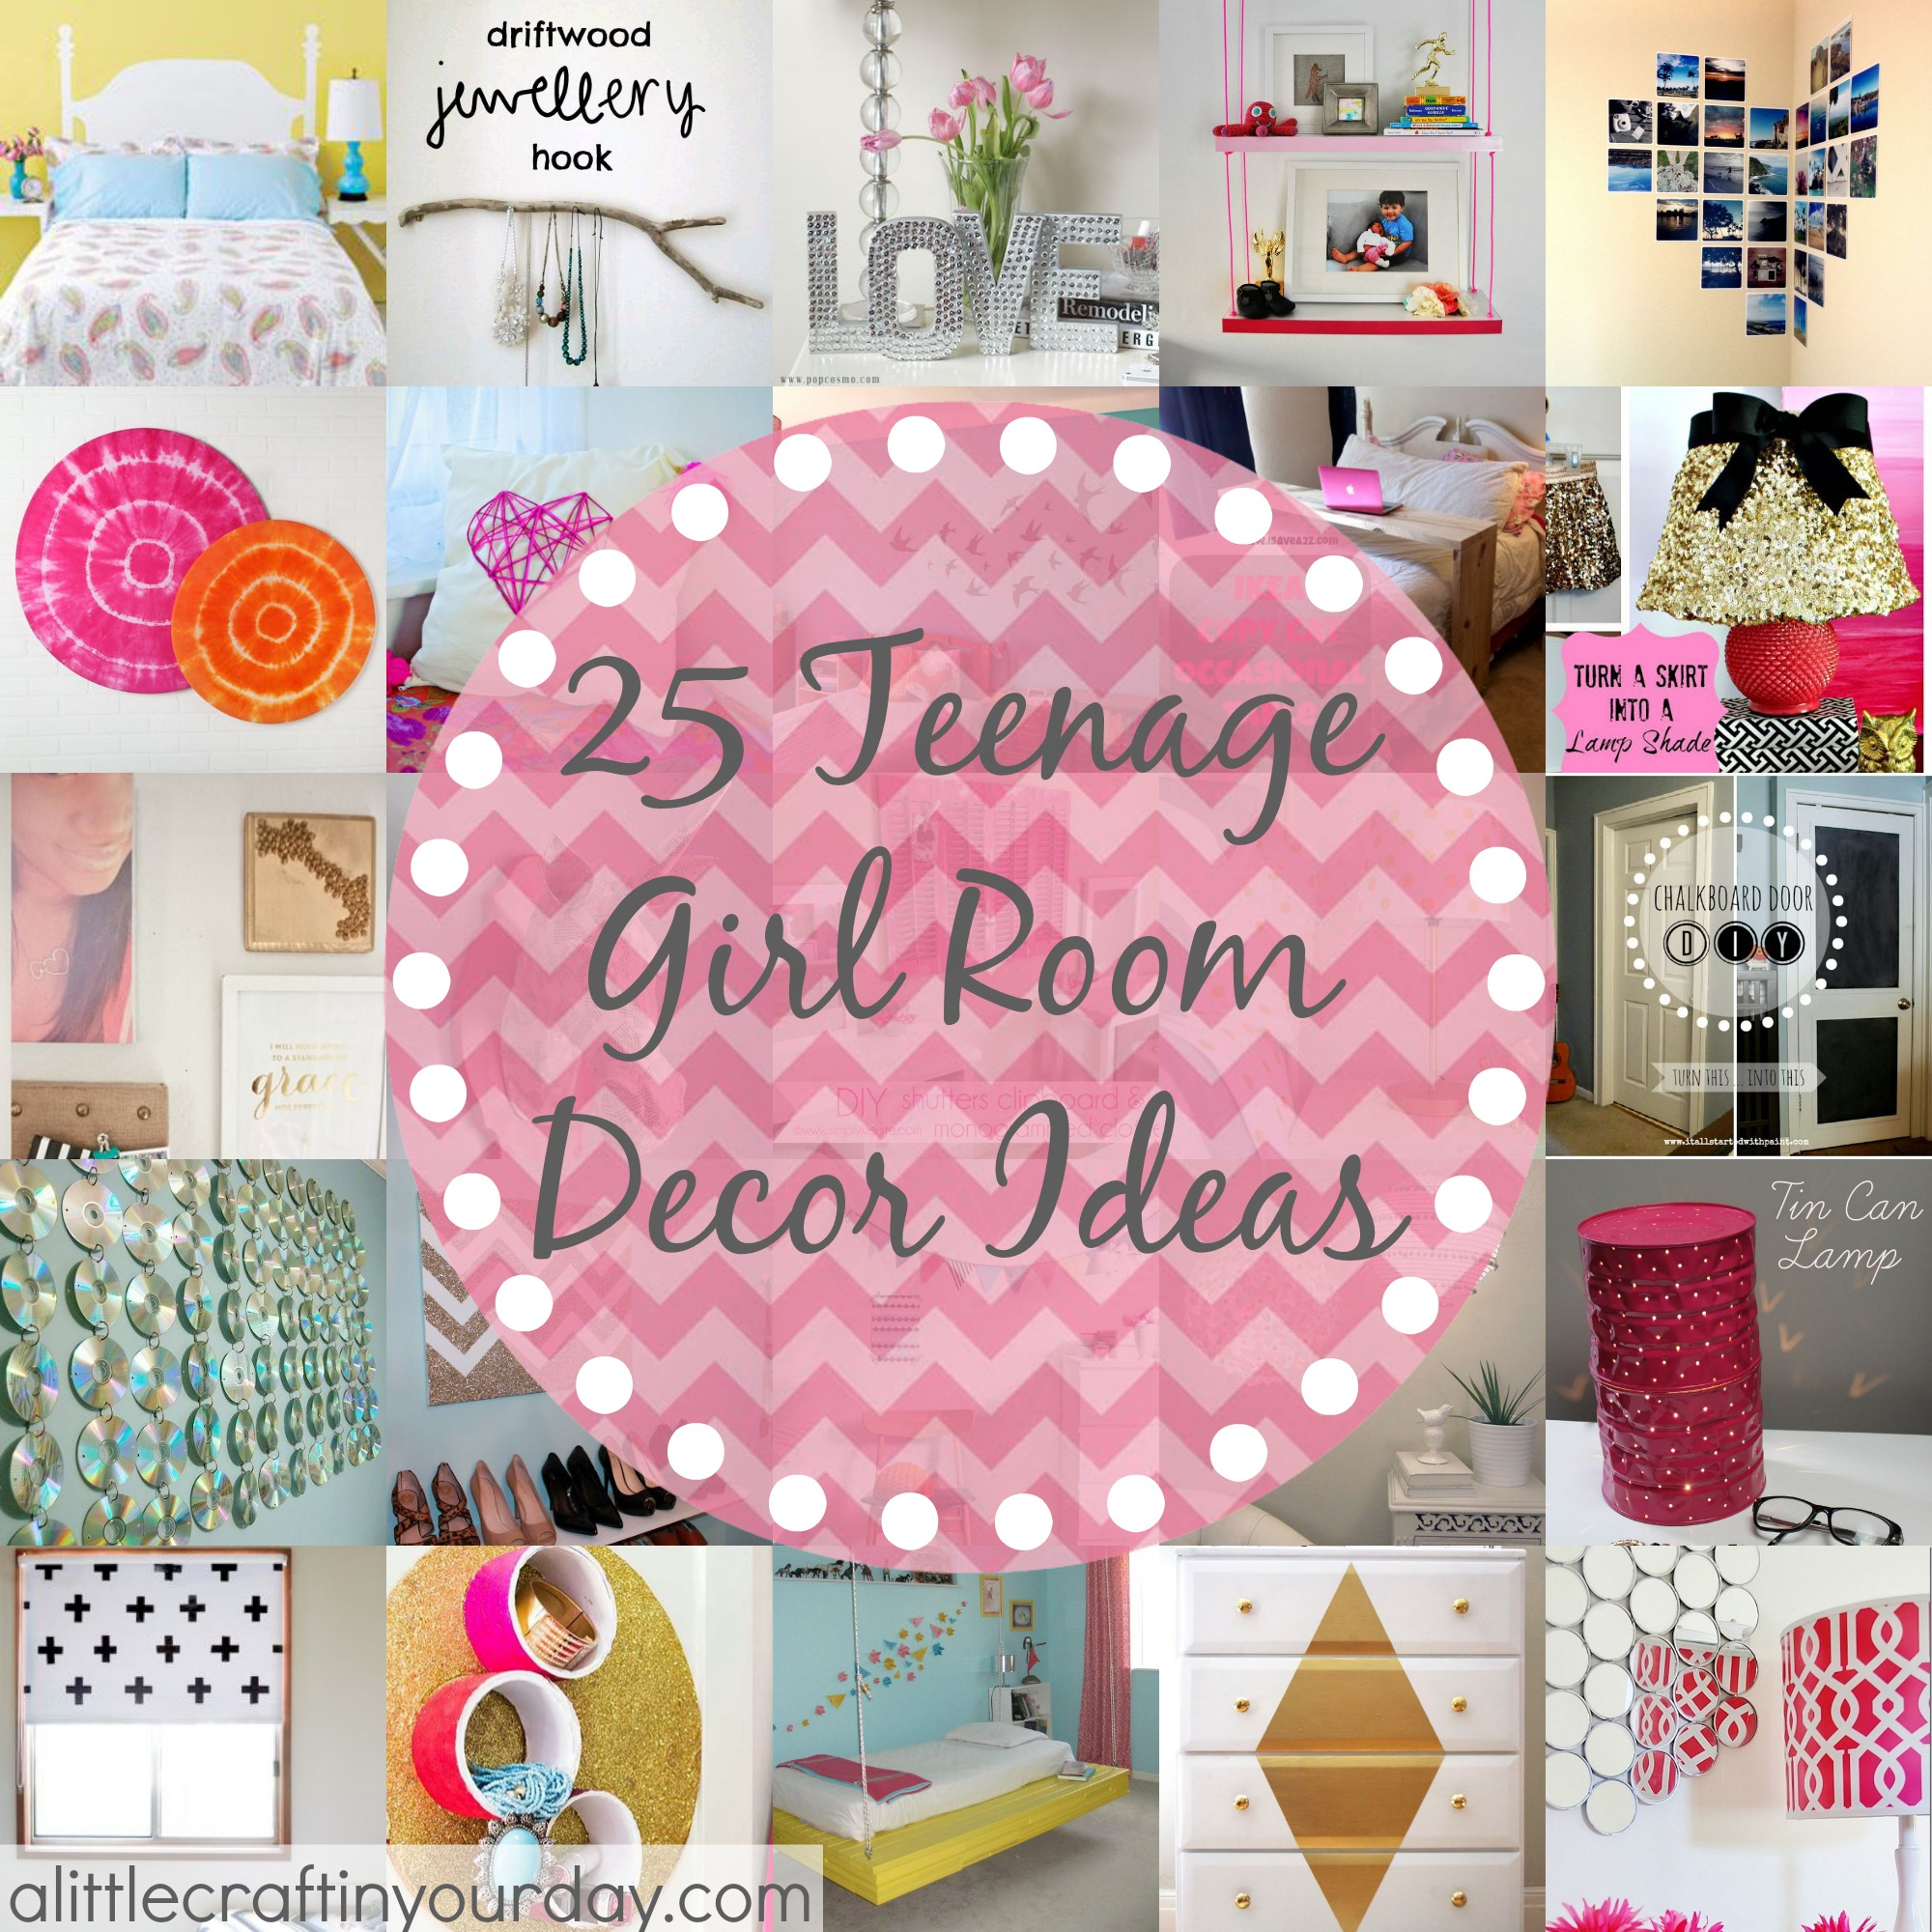 Diy Teen Bedroom Ideas Part - 28: 4/30 | 25 More Teenage Girl Room Decor Ideas